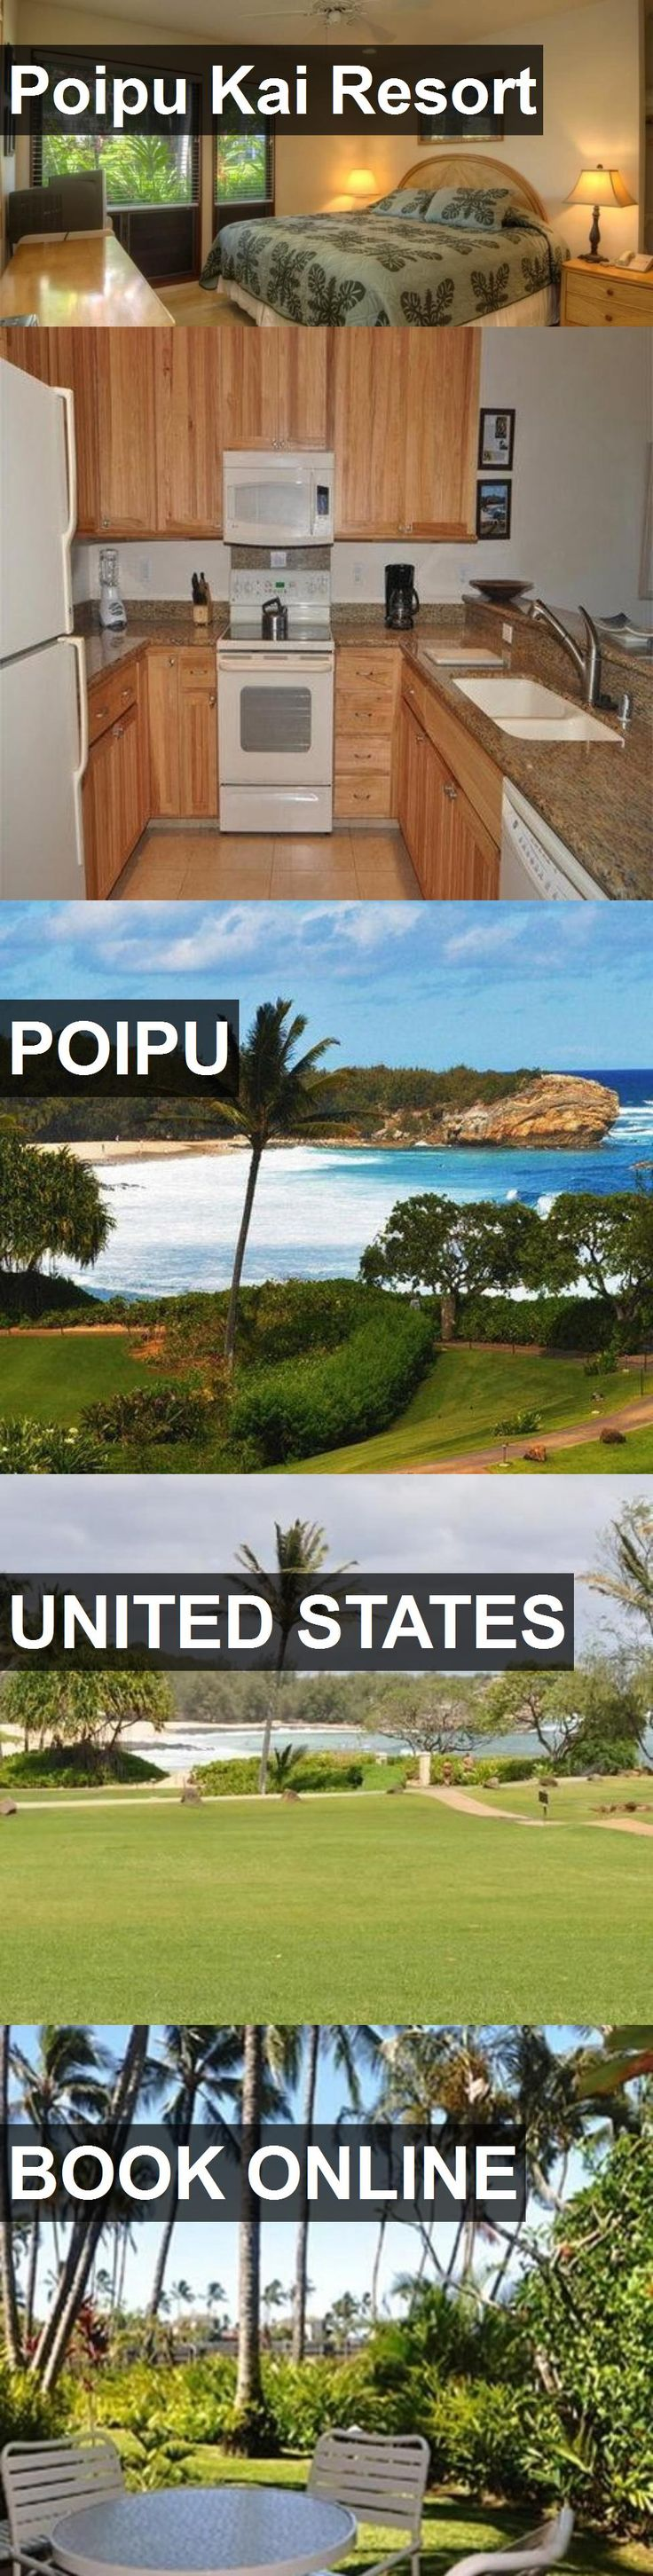 Hotel Poipu Kai Resort in Poipu, United States. For more information, photos, reviews and best prices please follow the link. #UnitedStates #Poipu #travel #vacation #hotel